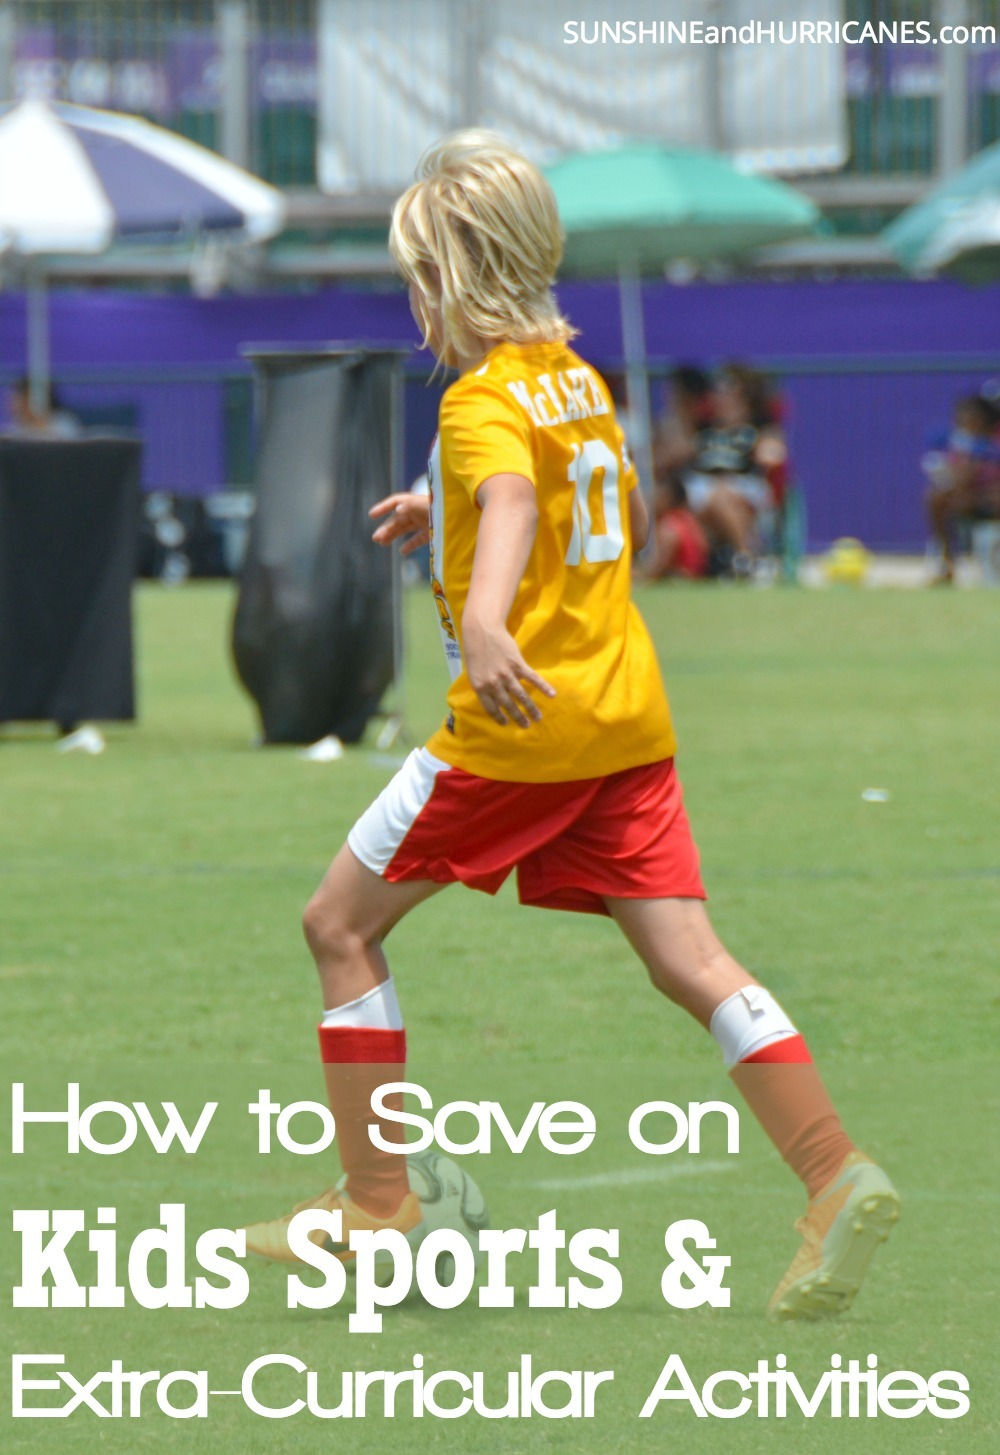 Whether your kids play sports, dance their hearts out, compete at gymnastics or pursue any of their passions, it can become a costly for the family budget. There are many ways to help make all these activities more affordable and in this post we'll share the best money saving tips we have to offer. How to Save on Kids Sports and Other Extra-Curricular Activities. SunshineandHurricanes.com